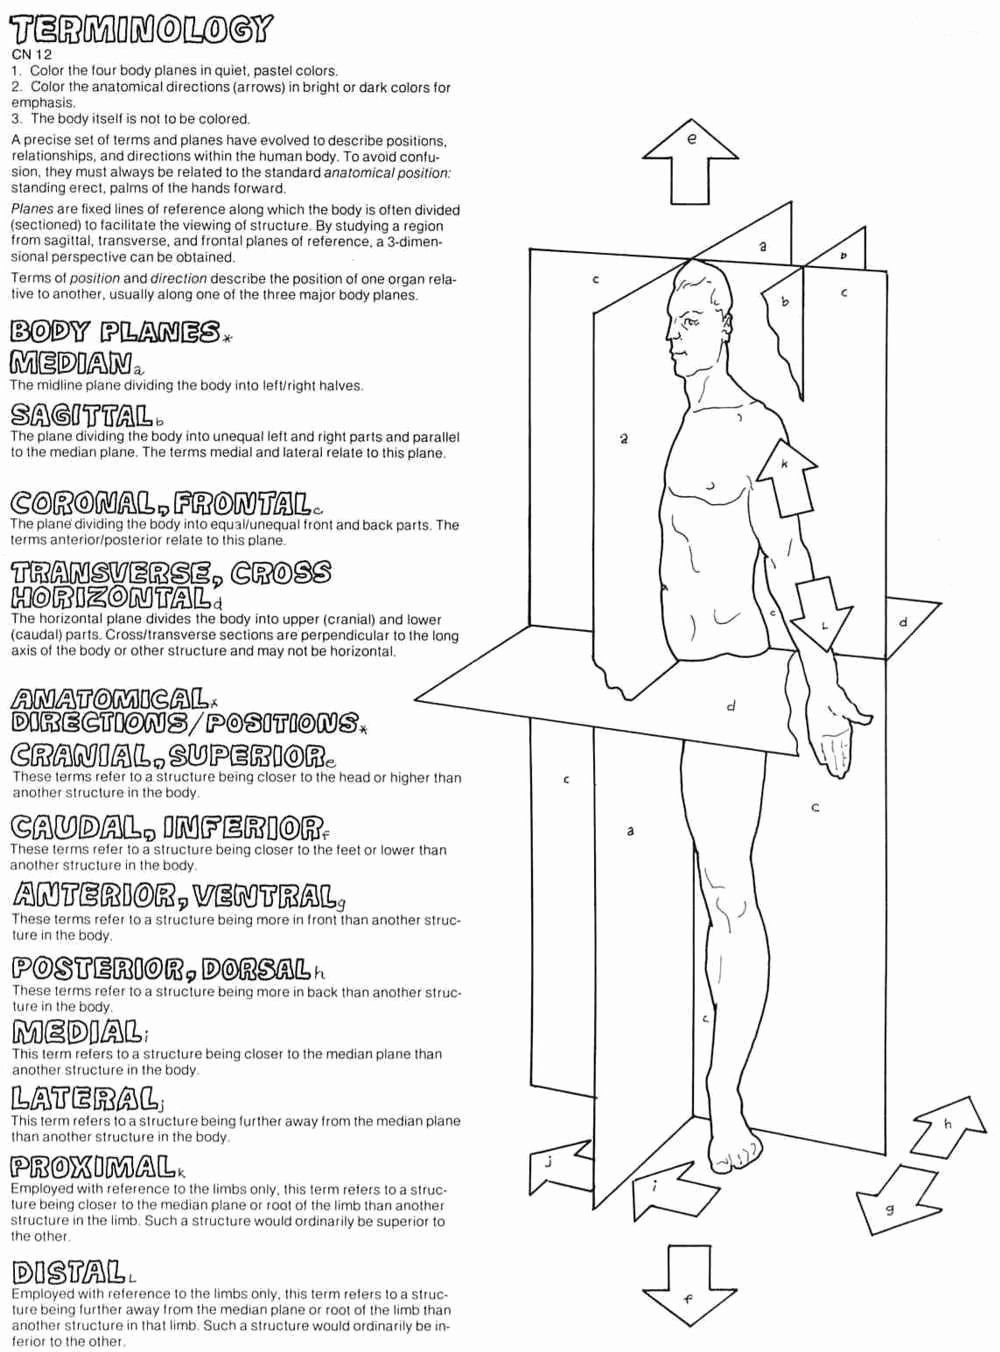 50 Anatomical Terms Worksheet Answers In 2020 Anatomy And